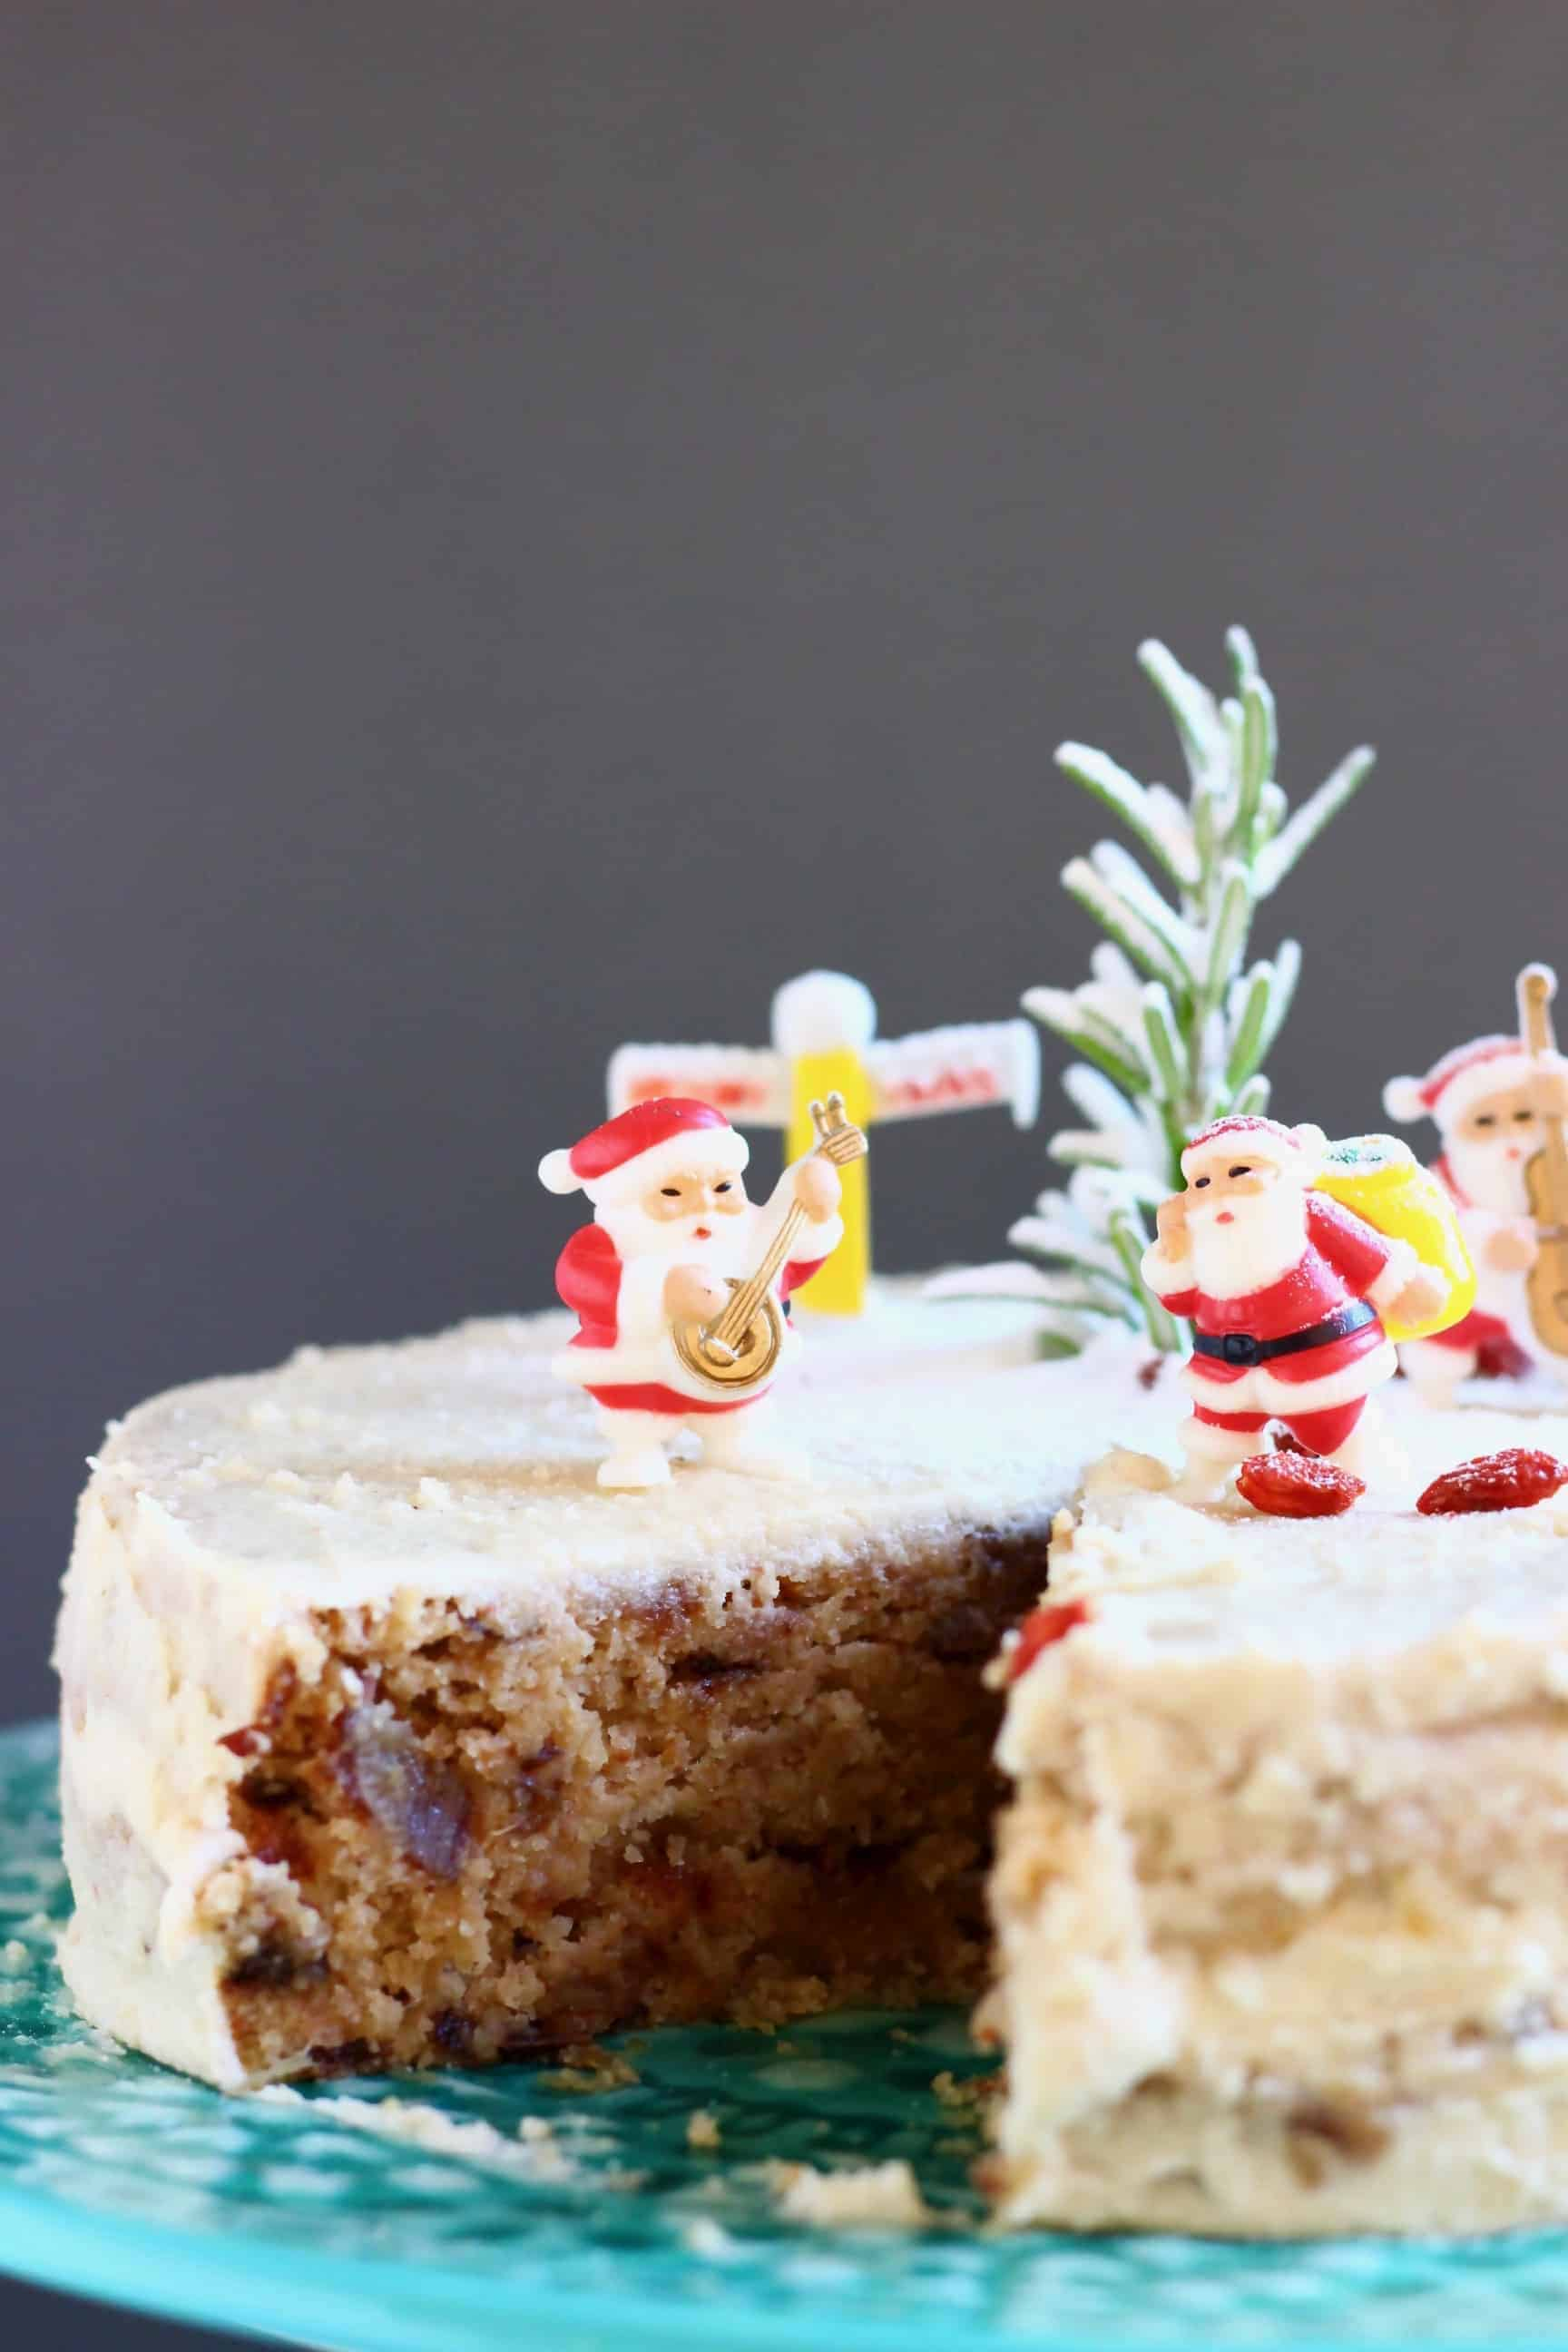 A Christmas fruit cake covered in white buttercream with a slice taken out of it topped with plastic santas against a grey background